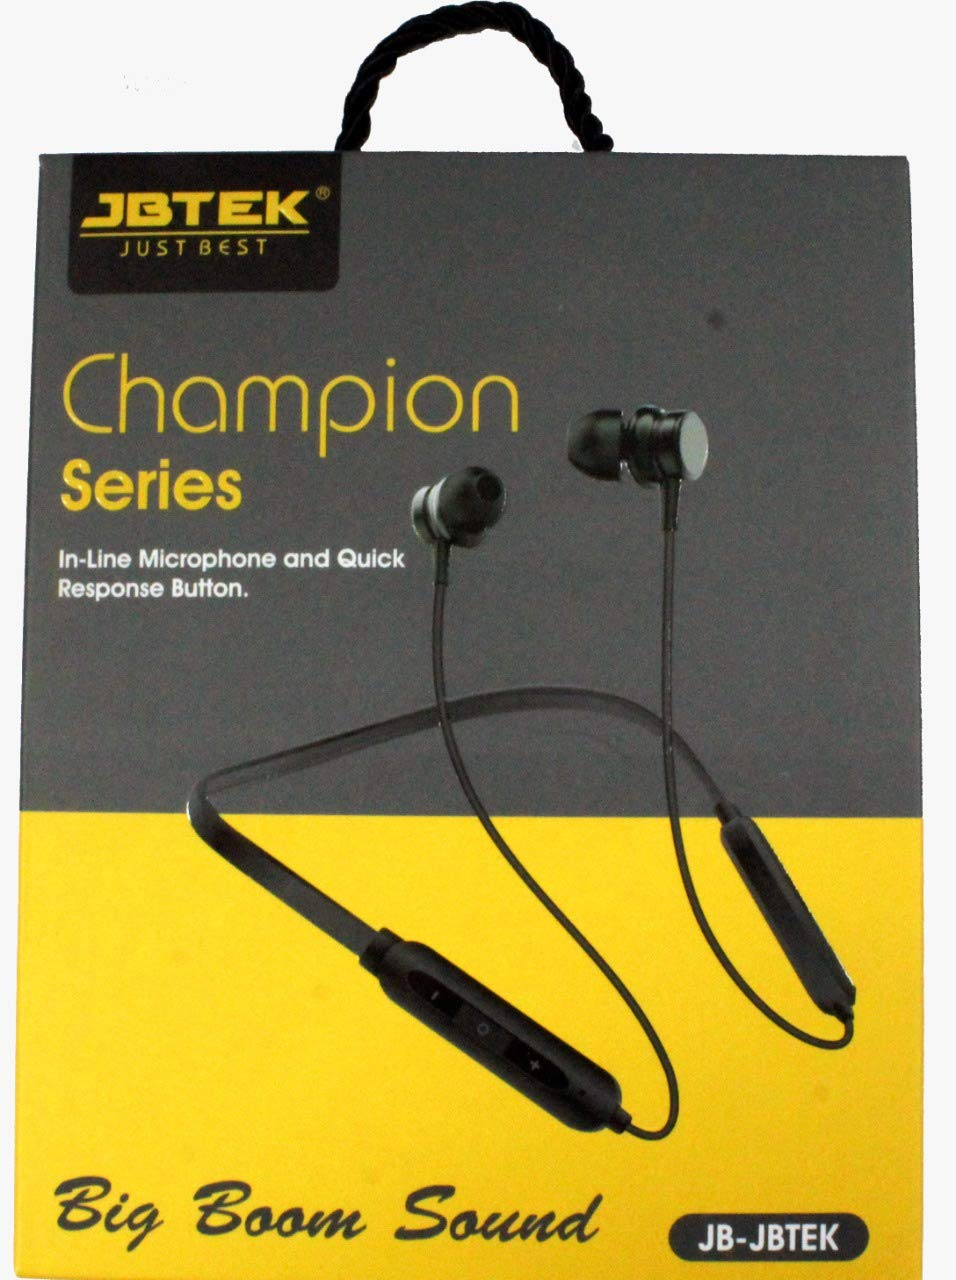 Jbtek champion seires Neckband wireless